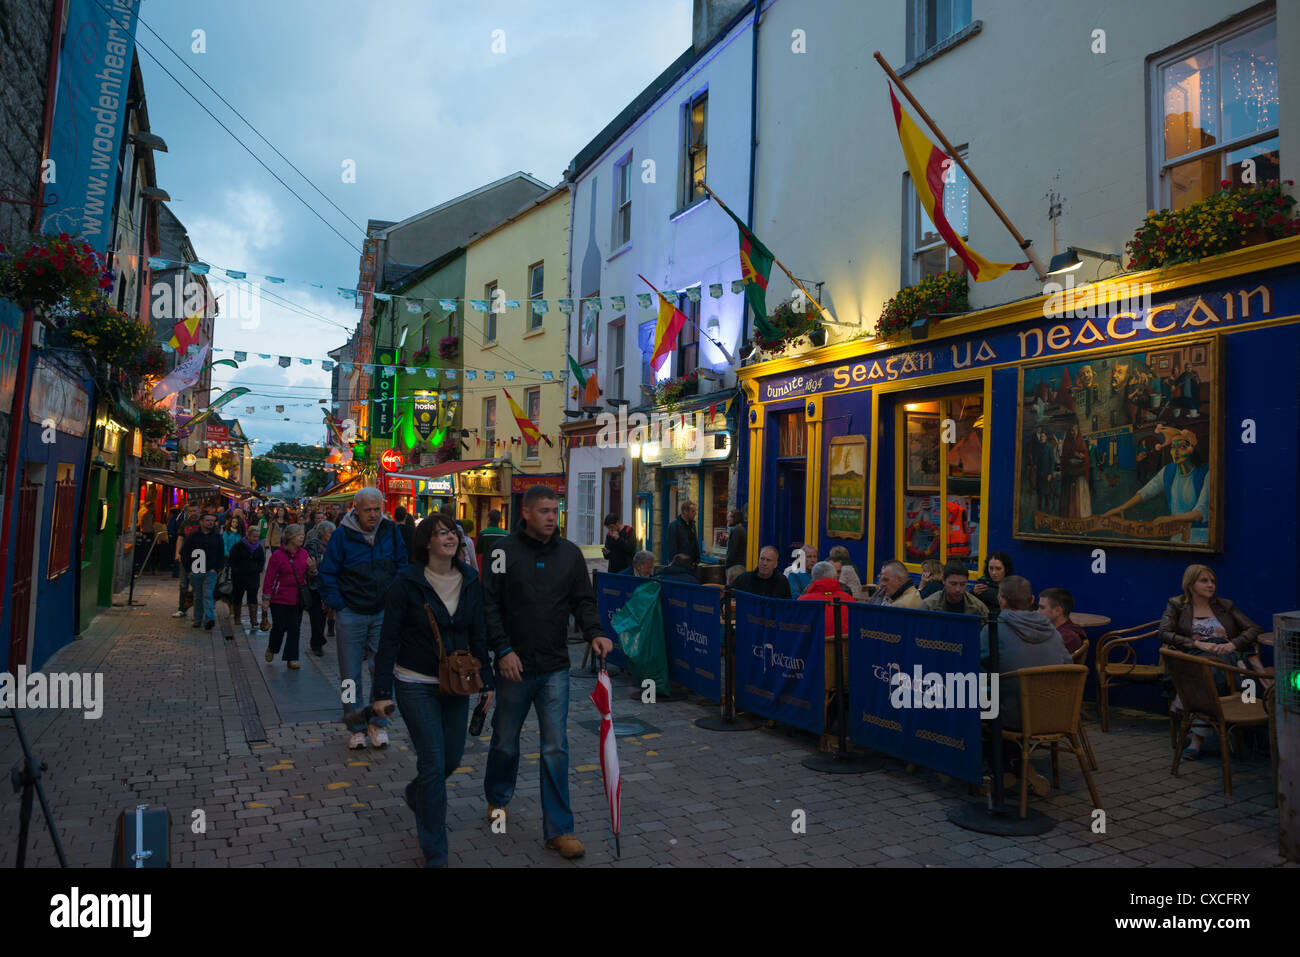 A colourful pub in the Latin quarter of Galway city, Ireland. - Stock Image